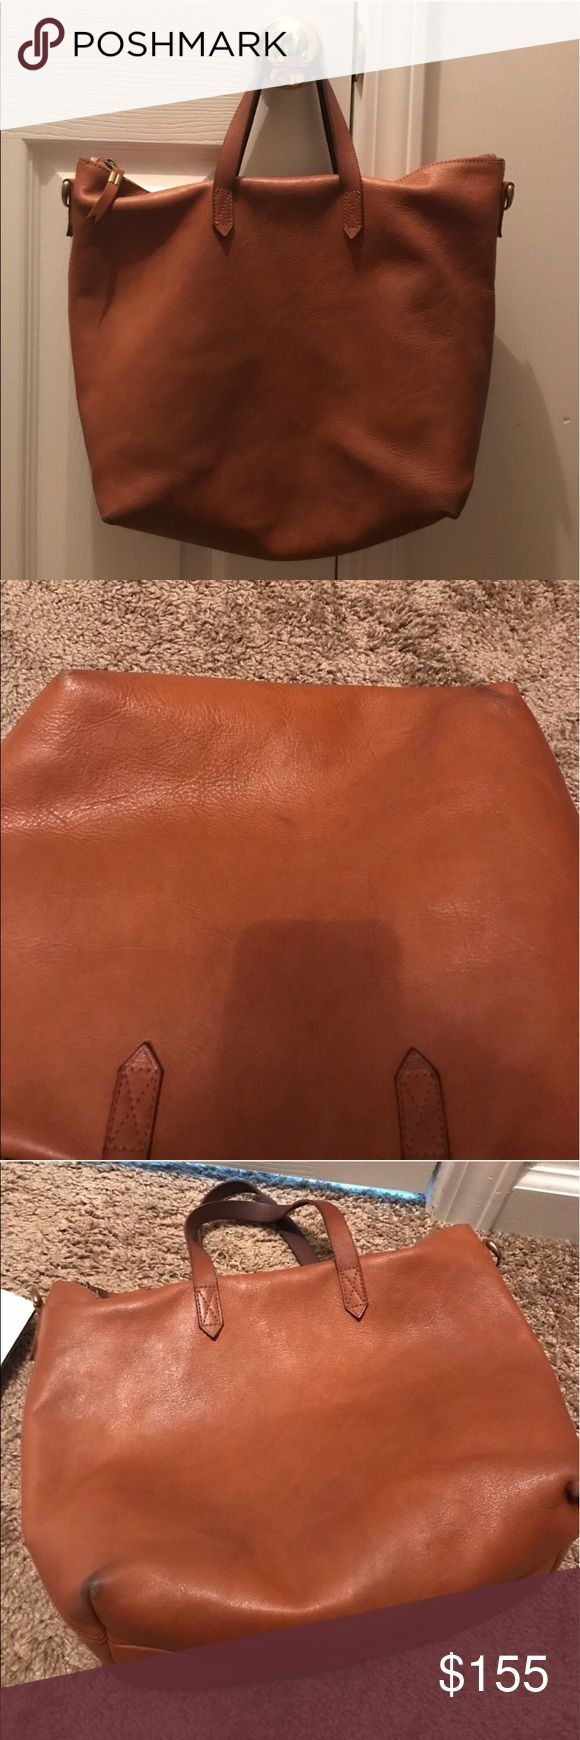 Madewell Transport Satchel in English Saddle SALE! In excellent used condition little discoloration on corners of the bag (common for this bag) normal wear on handle. No trades Madewell Bags Satchels